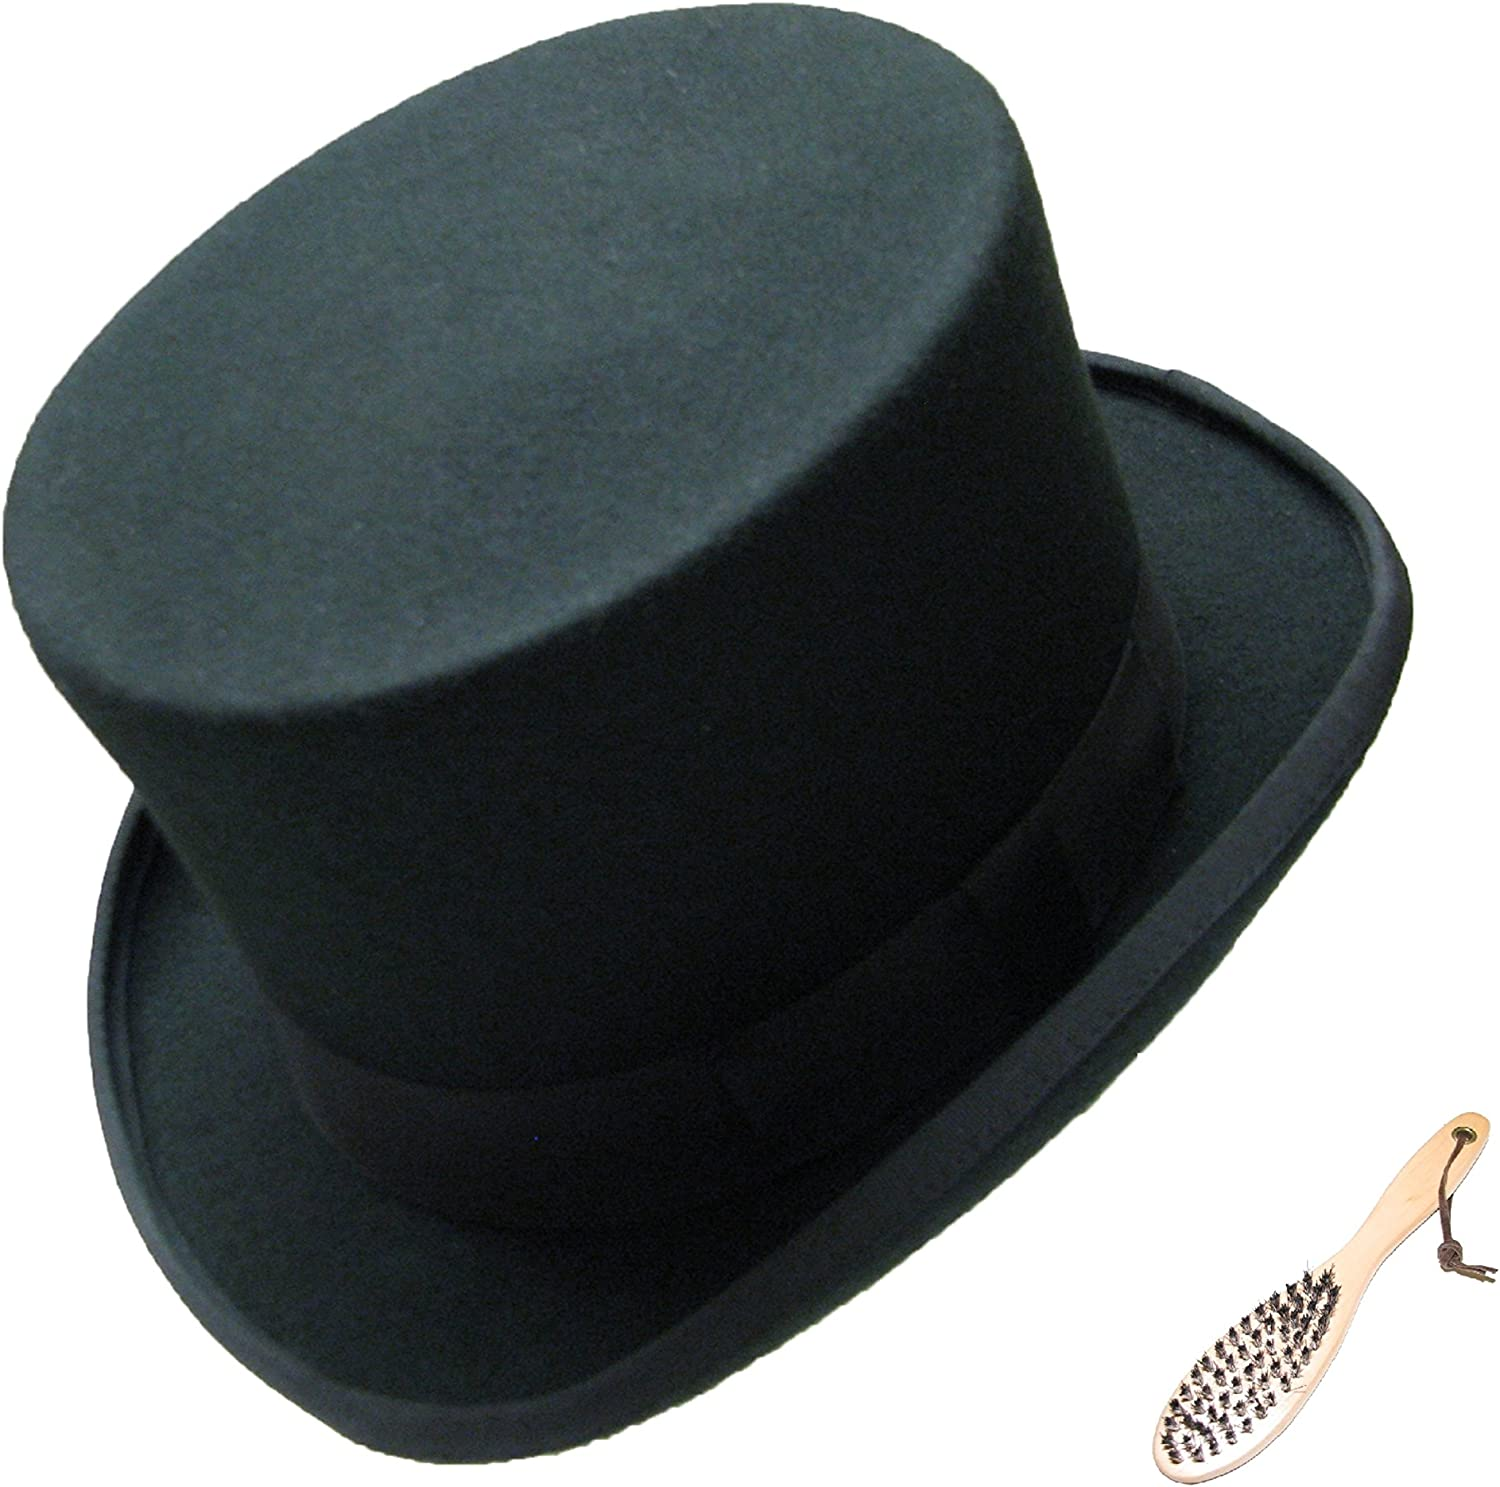 viz-uk wear 100/% Wool Black Top Hat with Clening Brush Wedding Event Ascot Satin Lined Topper